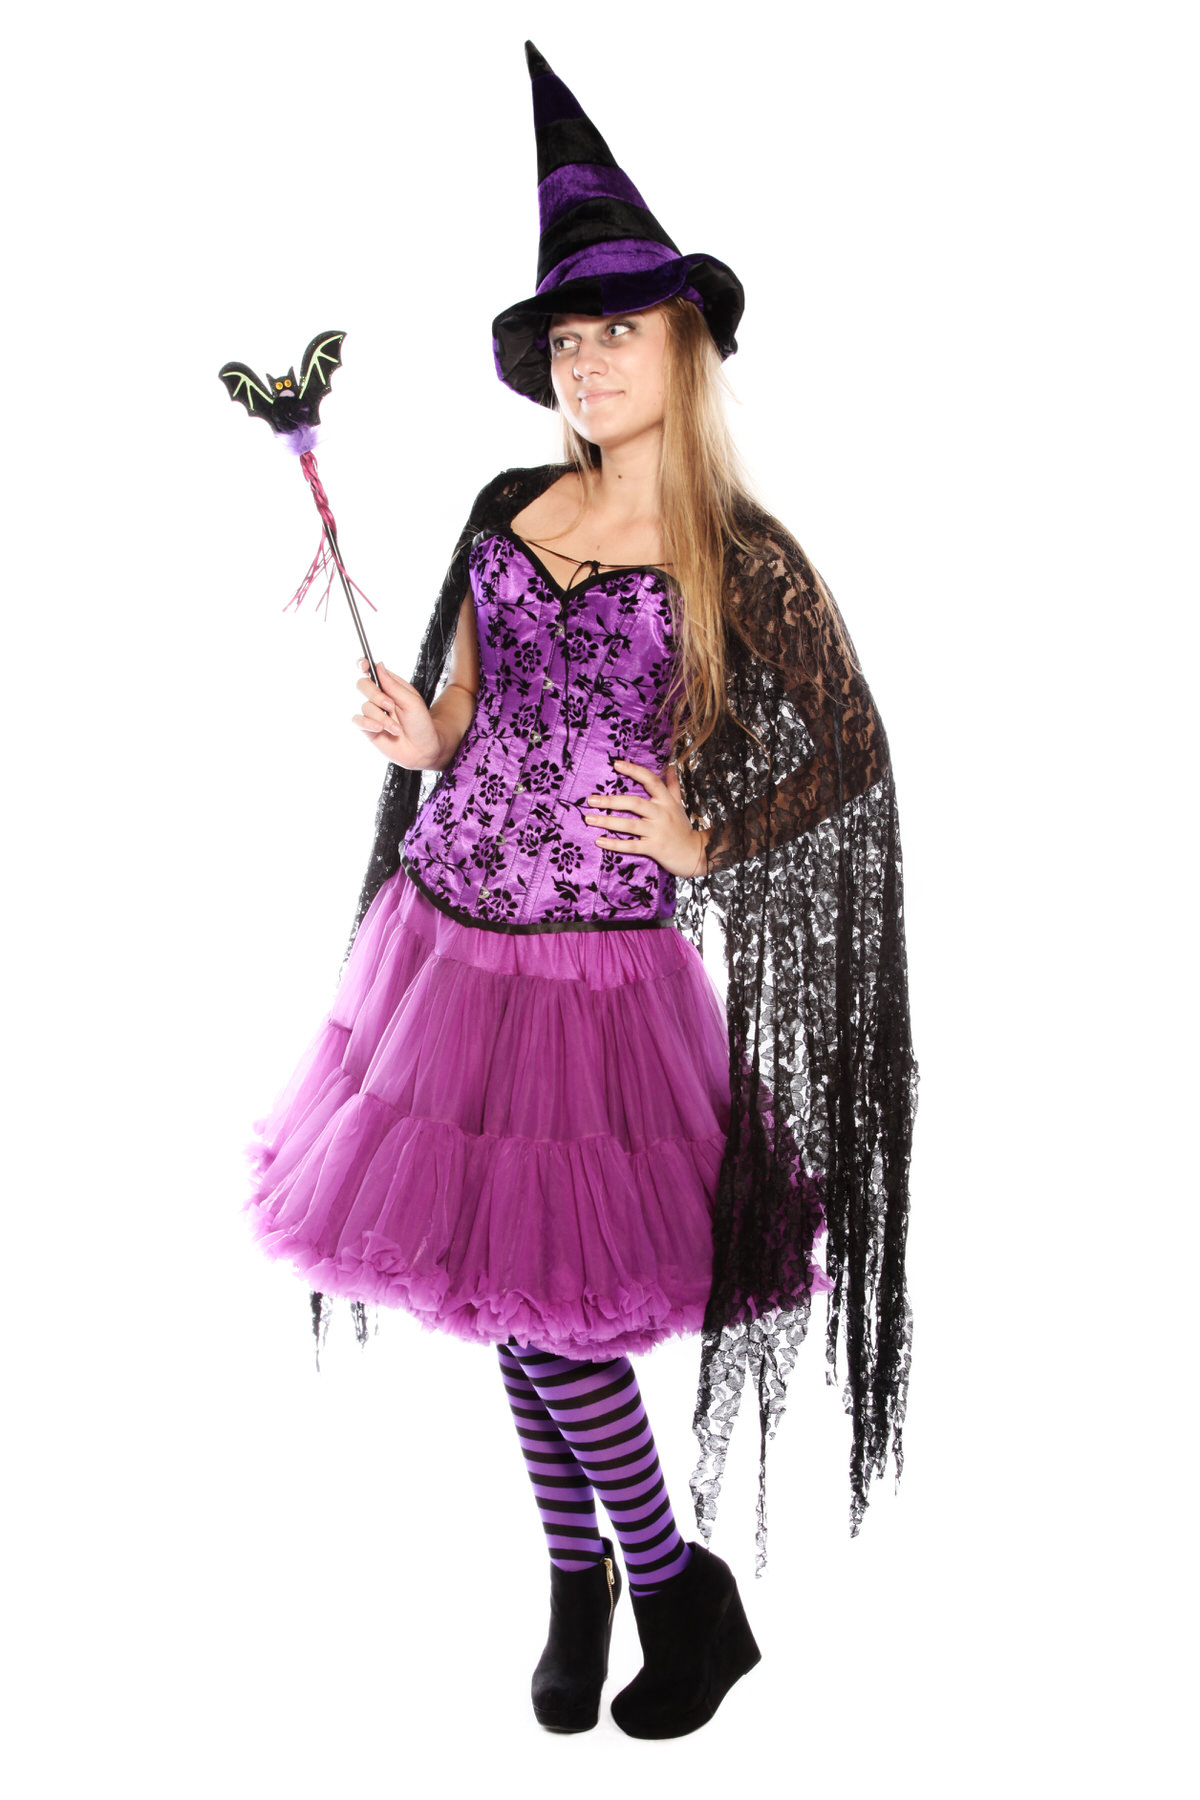 PURPLE FROU FROU PETTICOAT WITCH COSTUME